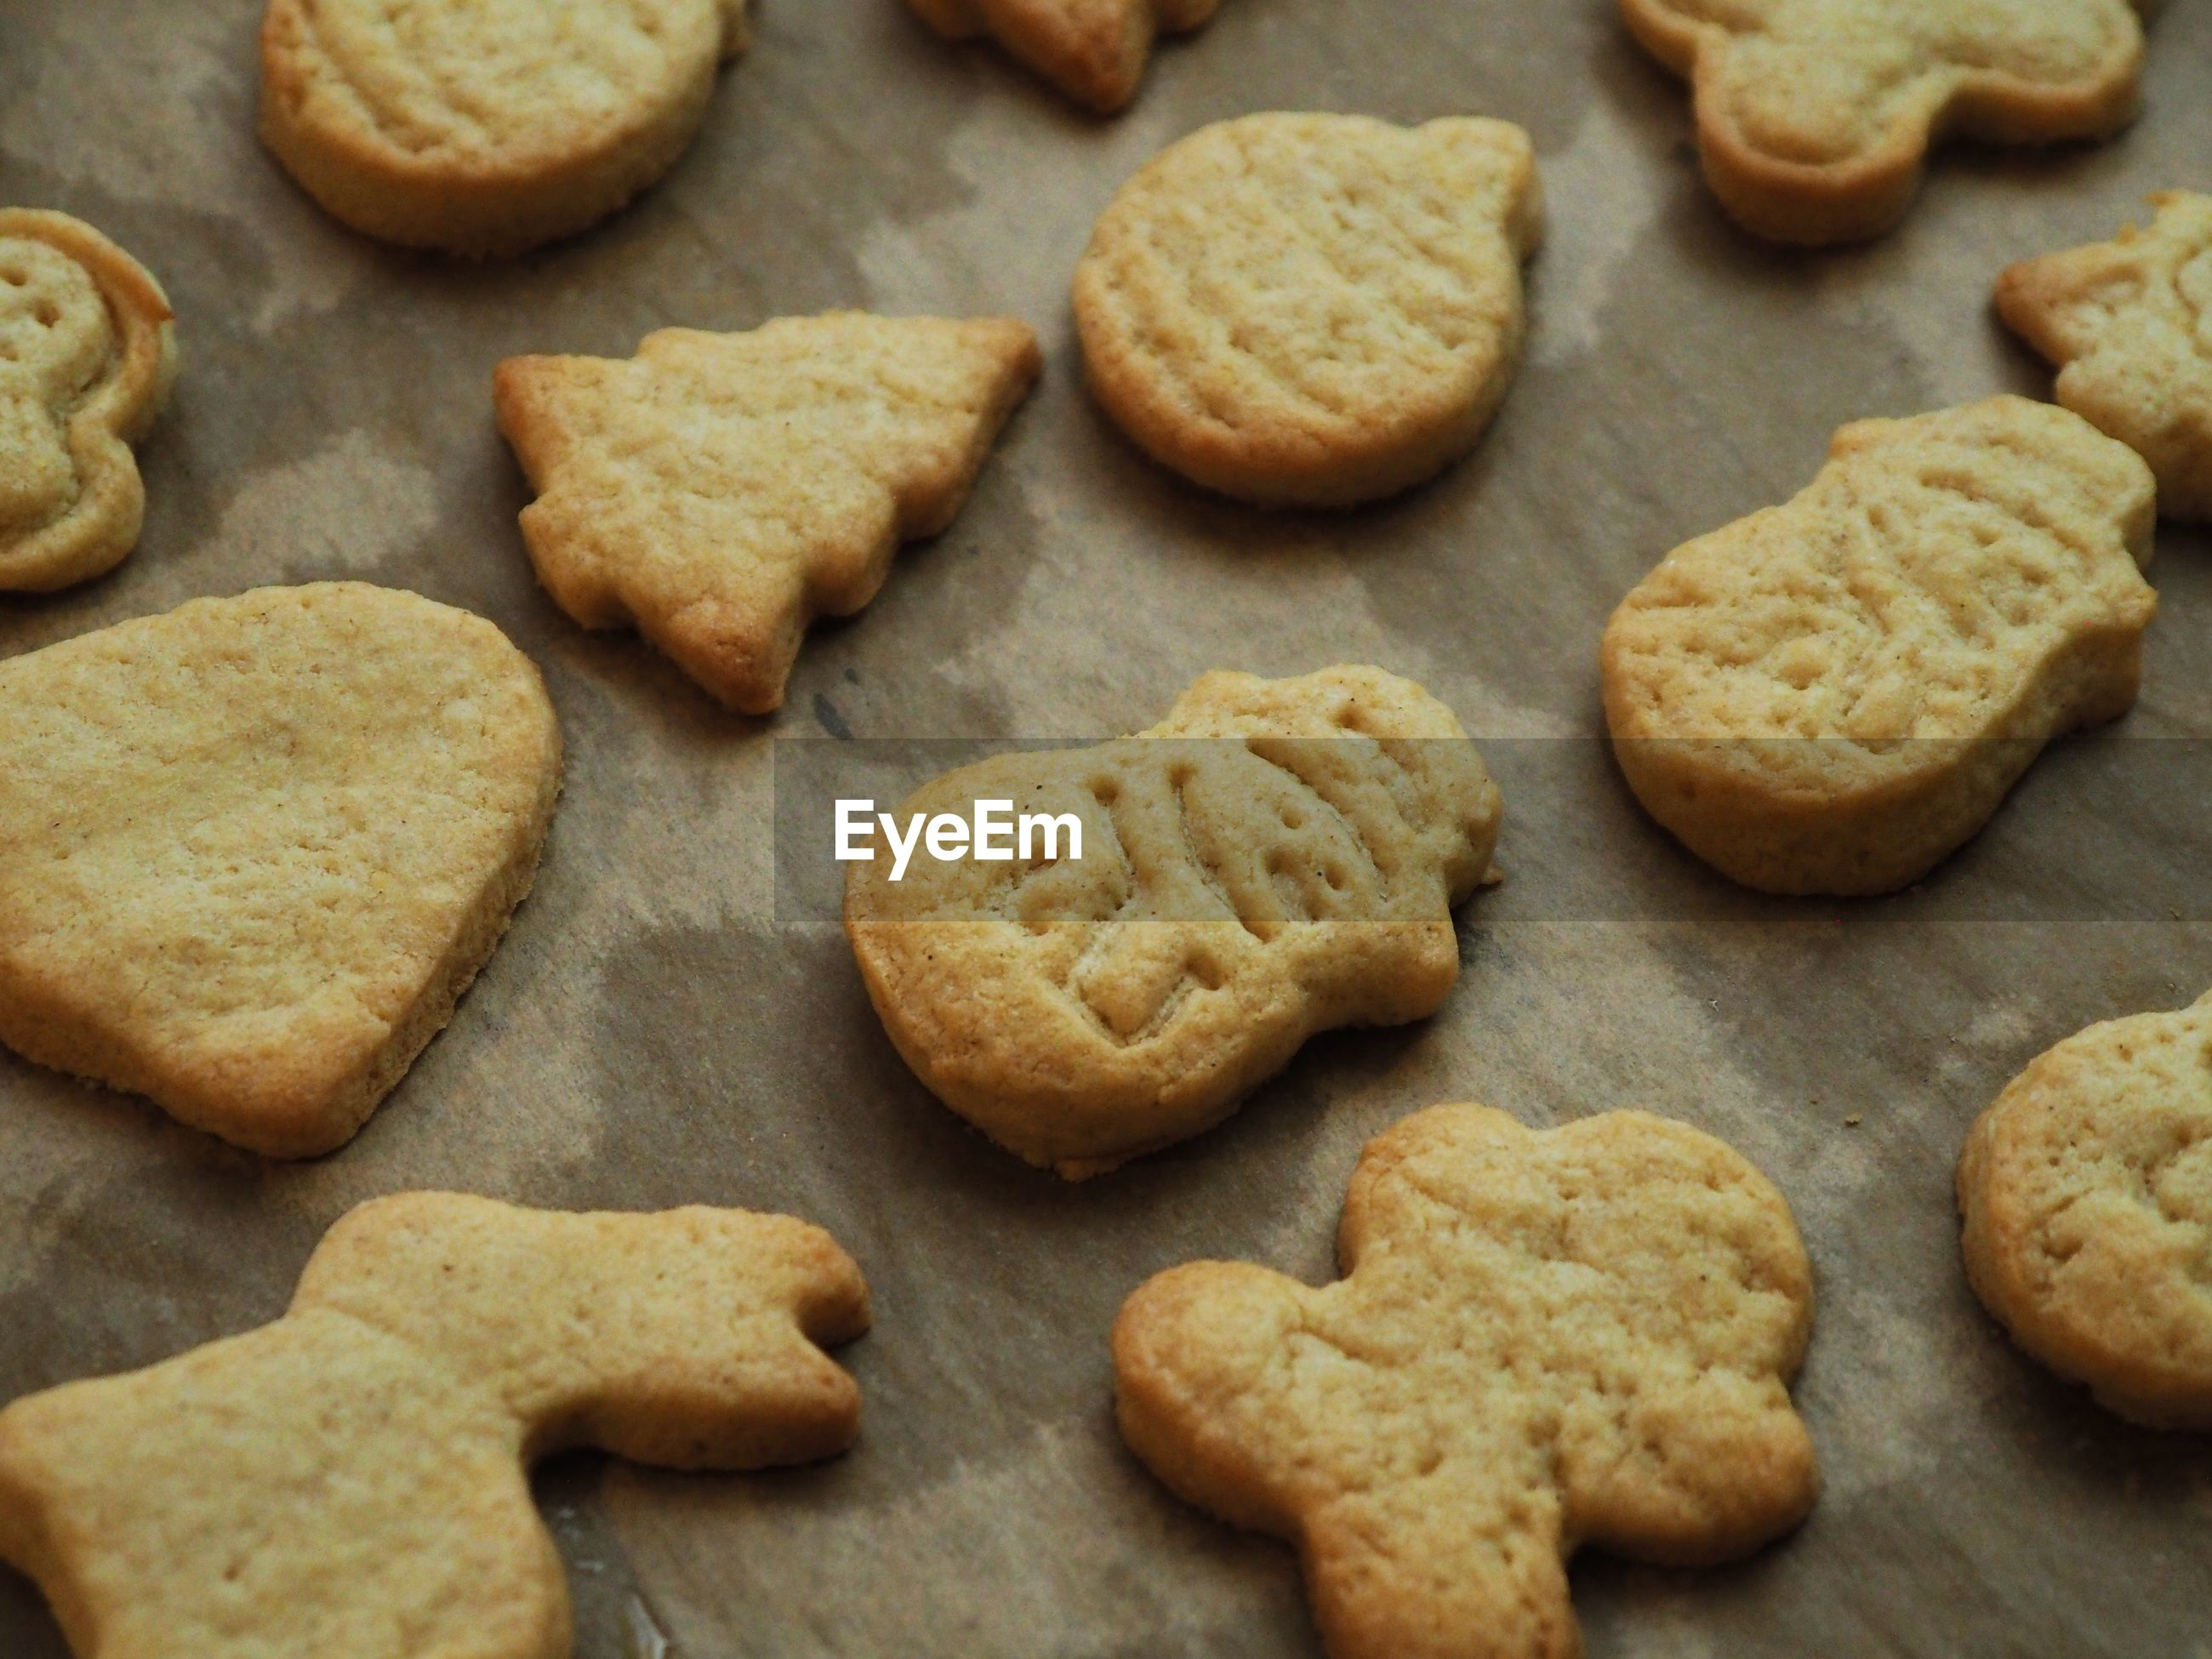 HIGH ANGLE VIEW OF COOKIES IN TRAY